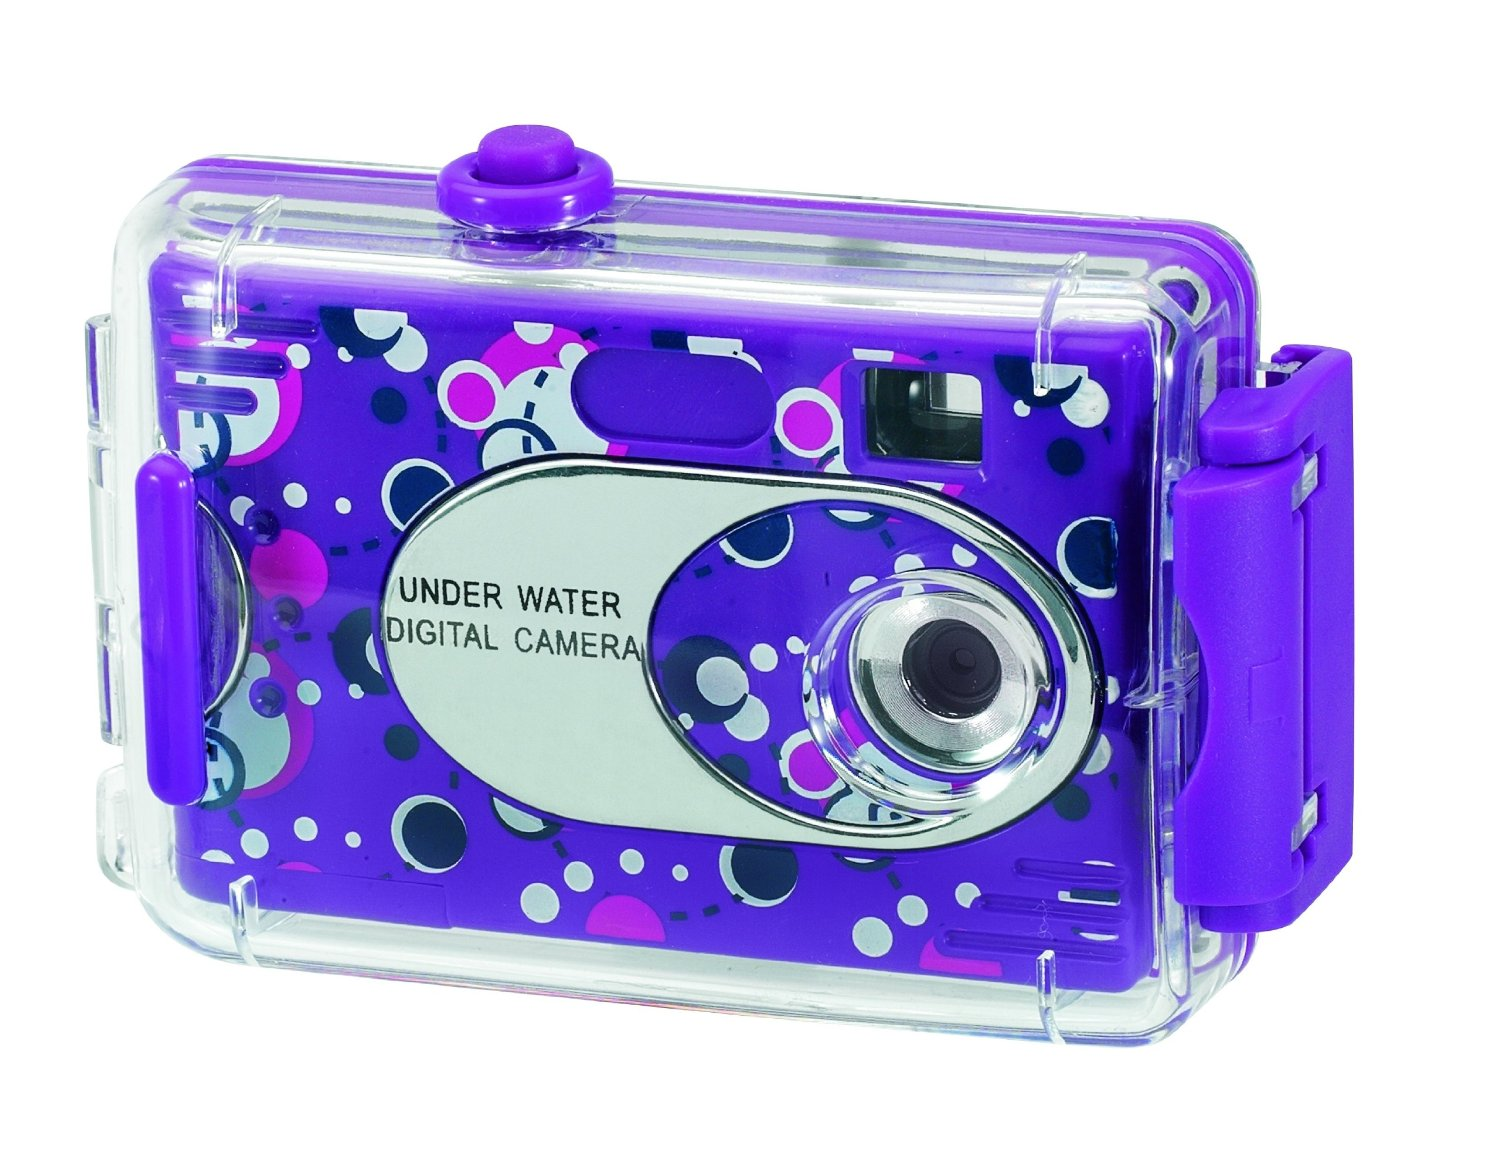 waterproof digital camera, digital camera, waterproof camera, camera for kids